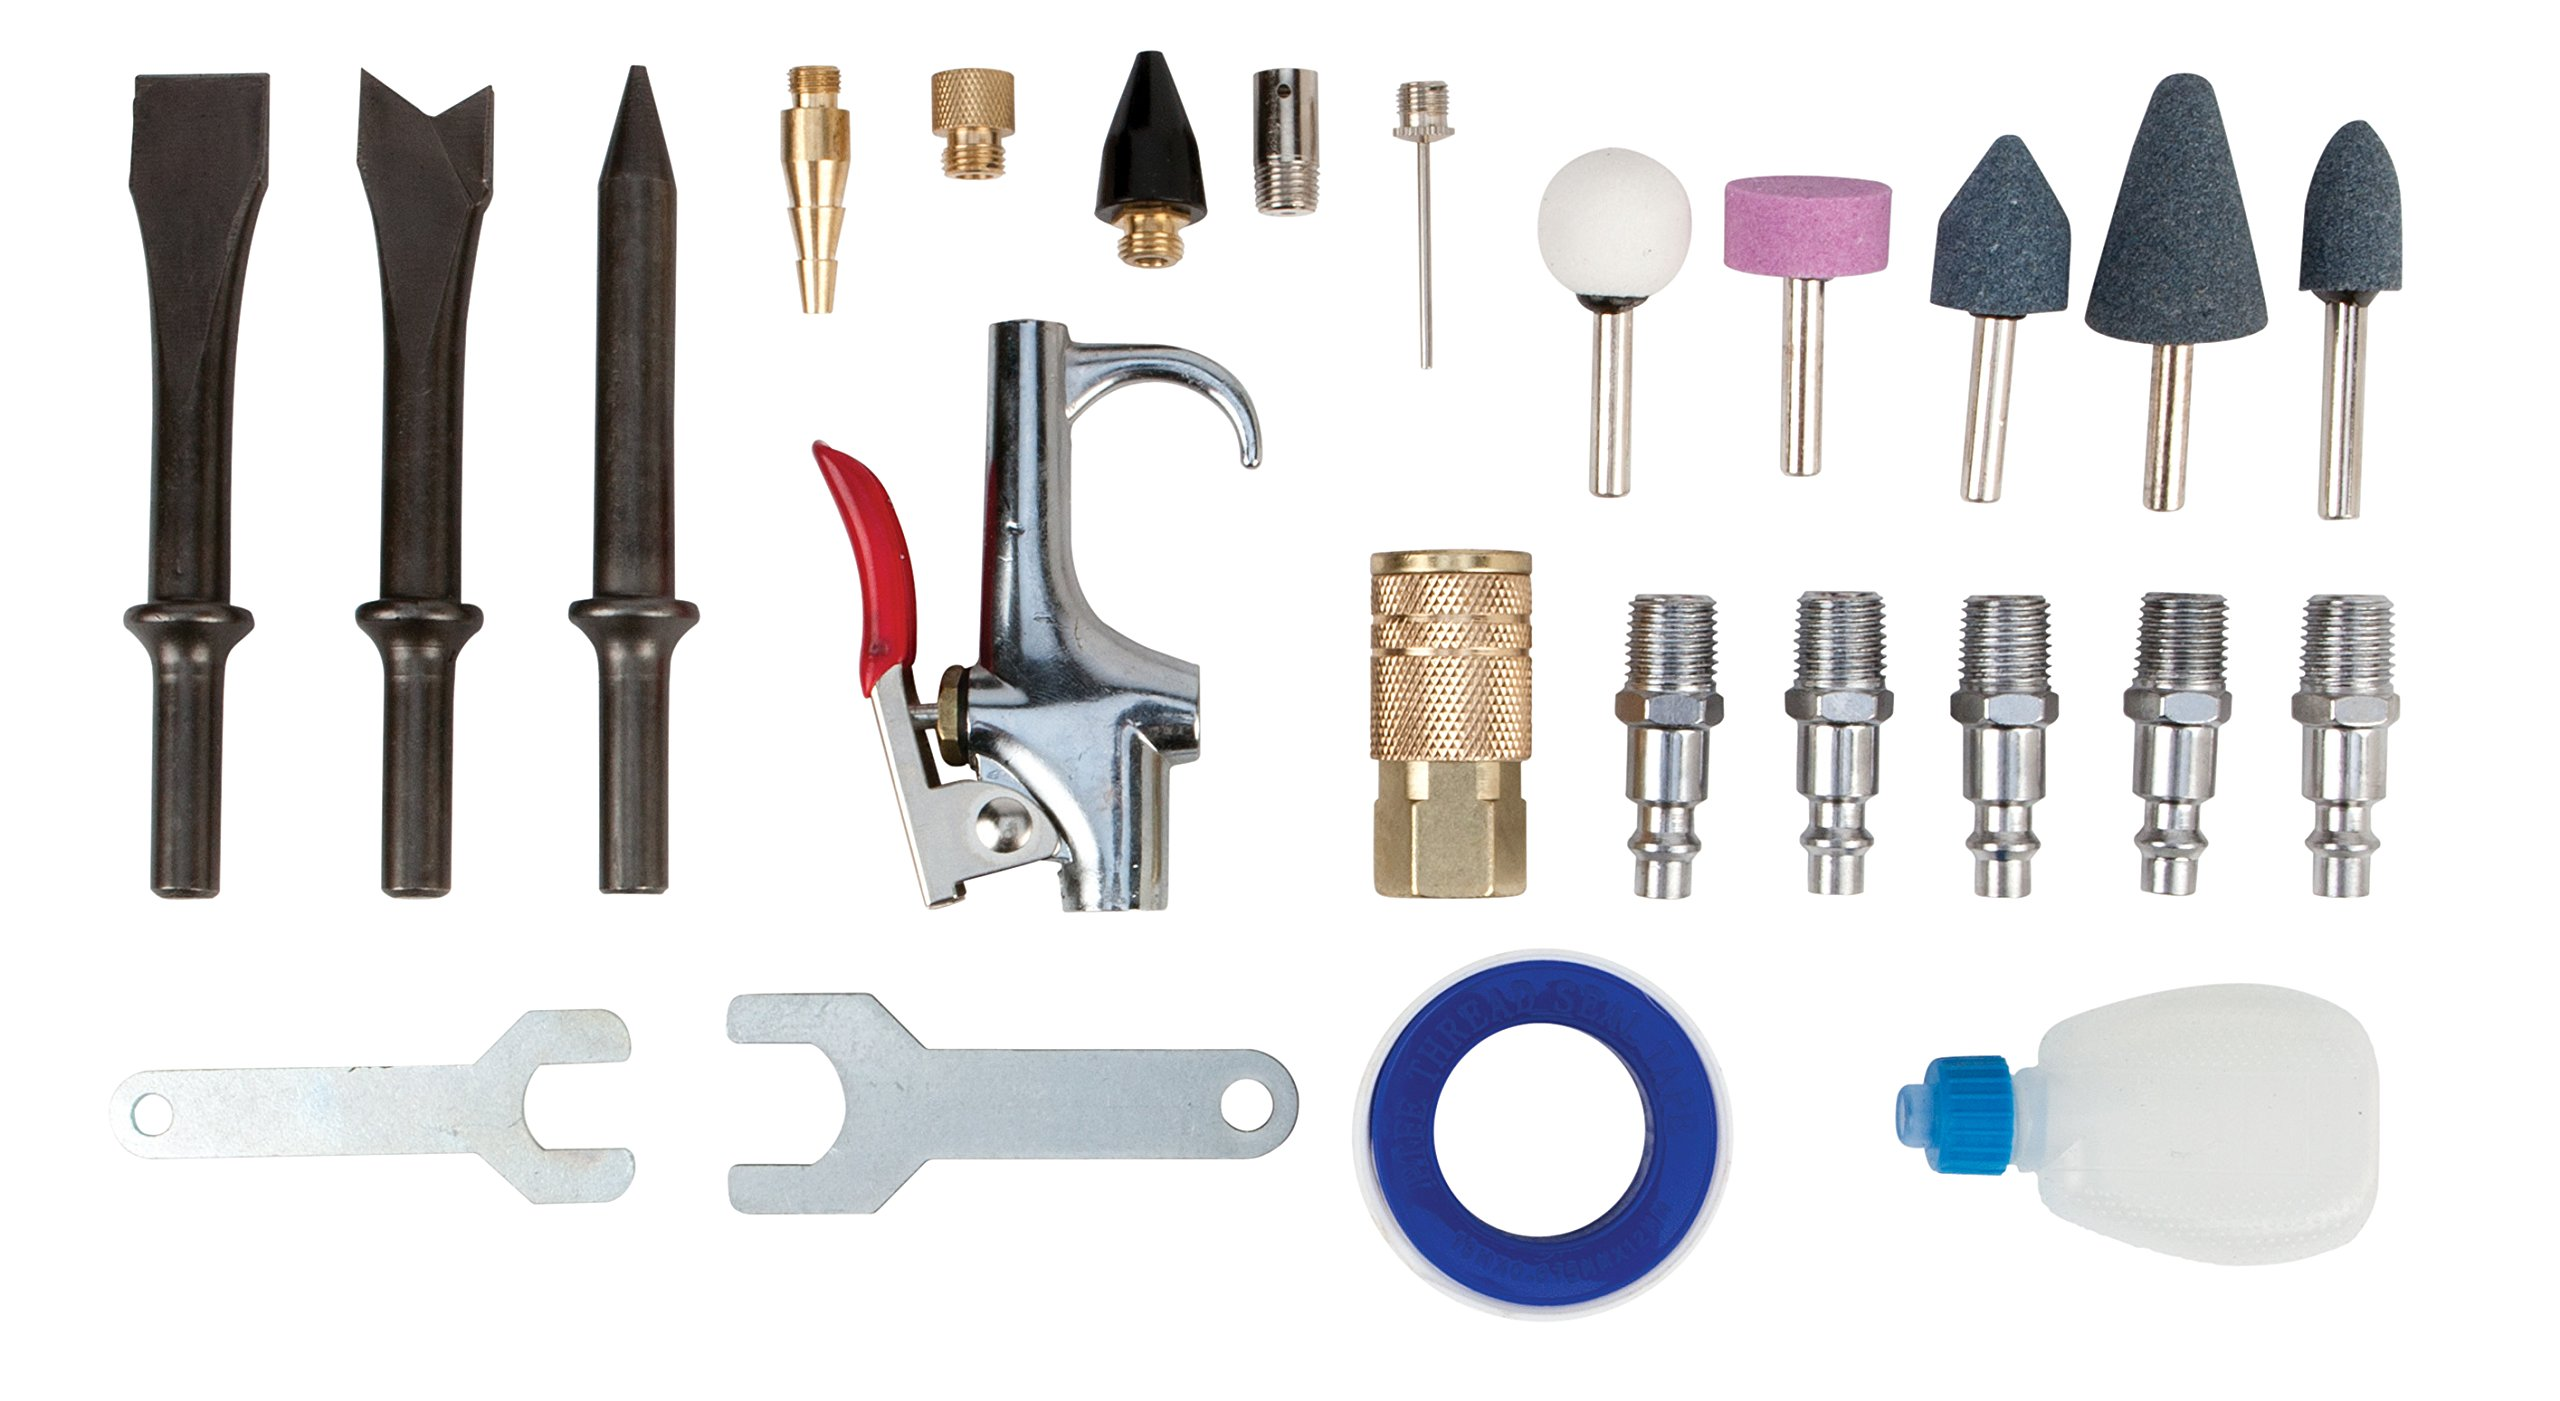 Performance Tool M670 Air Tool Kit, 41 Piece by Performance Tool (Image #3)